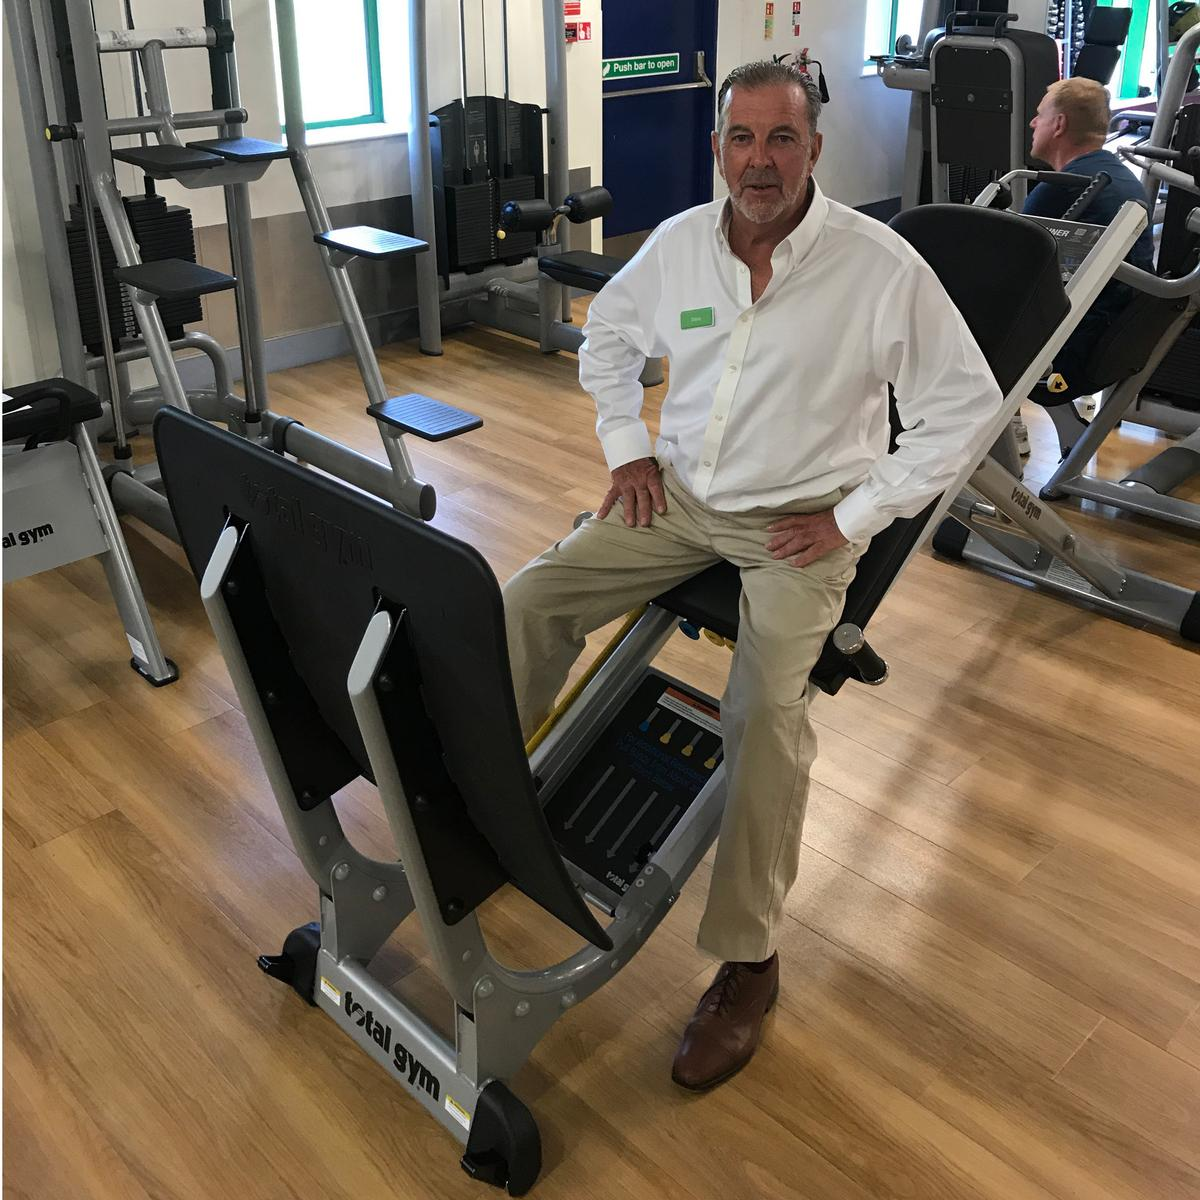 Chris Lane has launched Lanes Health Club in Angmering, West Sussex